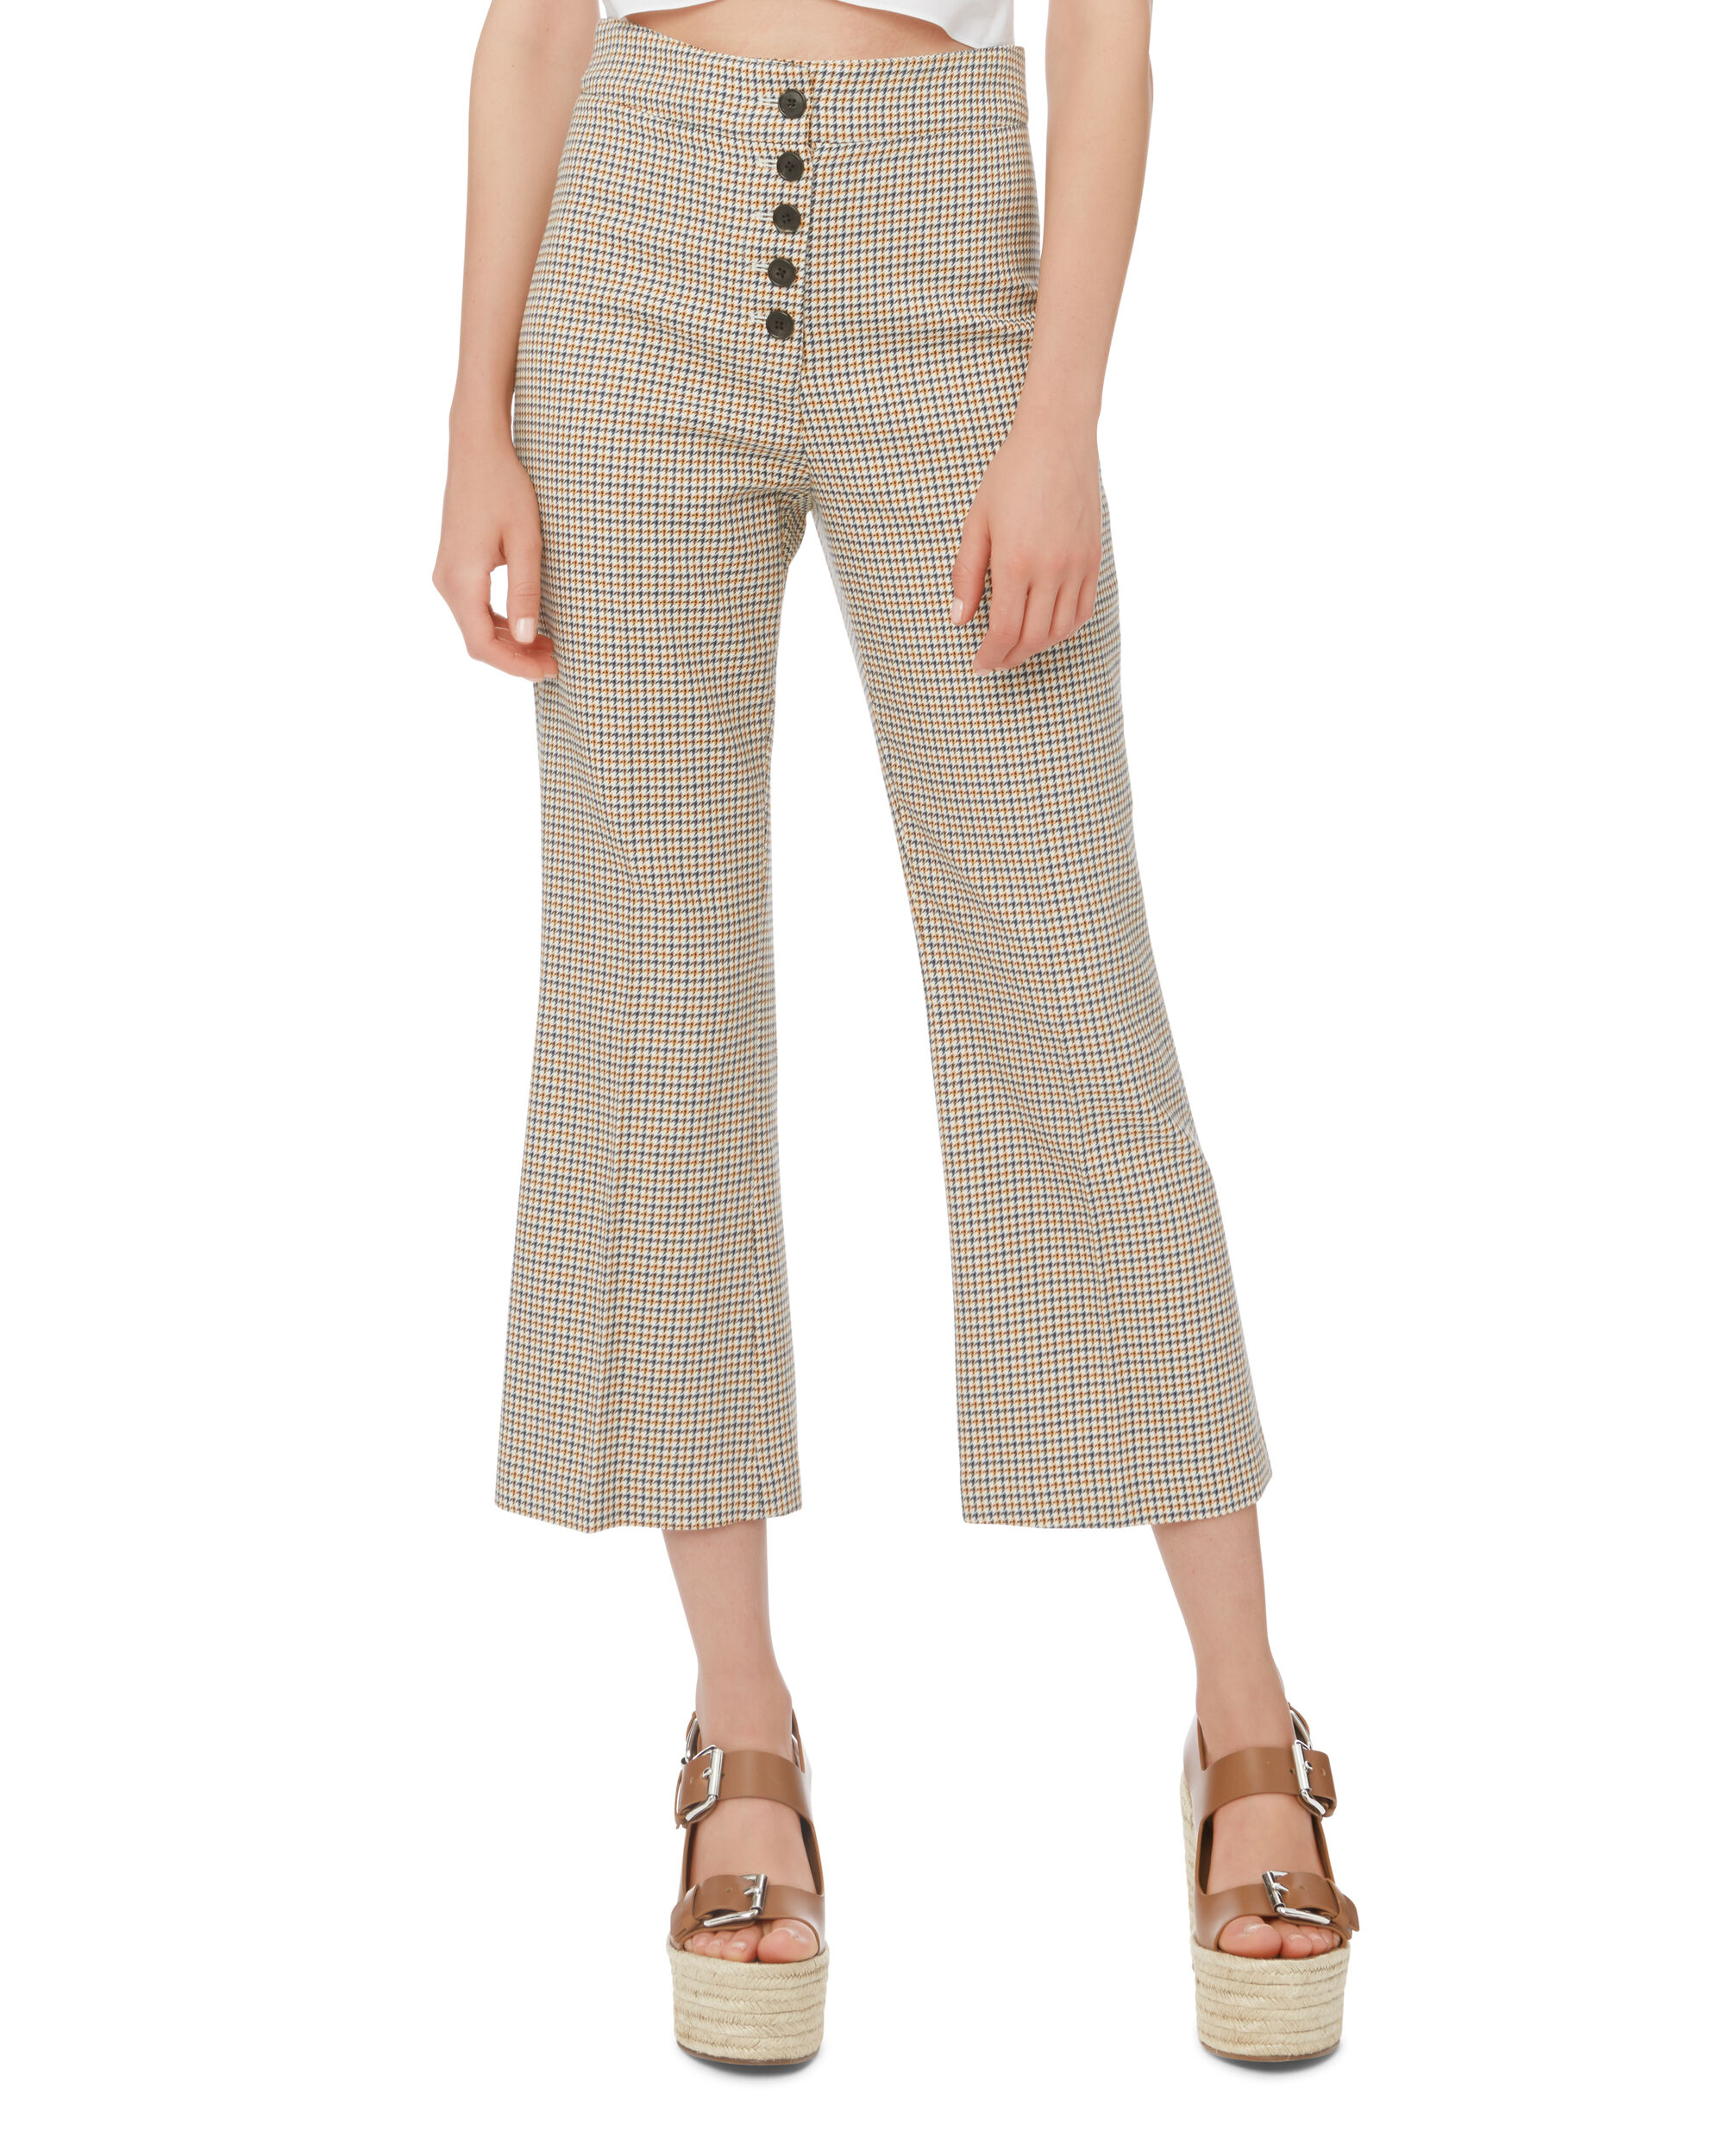 Zap Crop Flare Trousers, BLUE-MED, hi-res